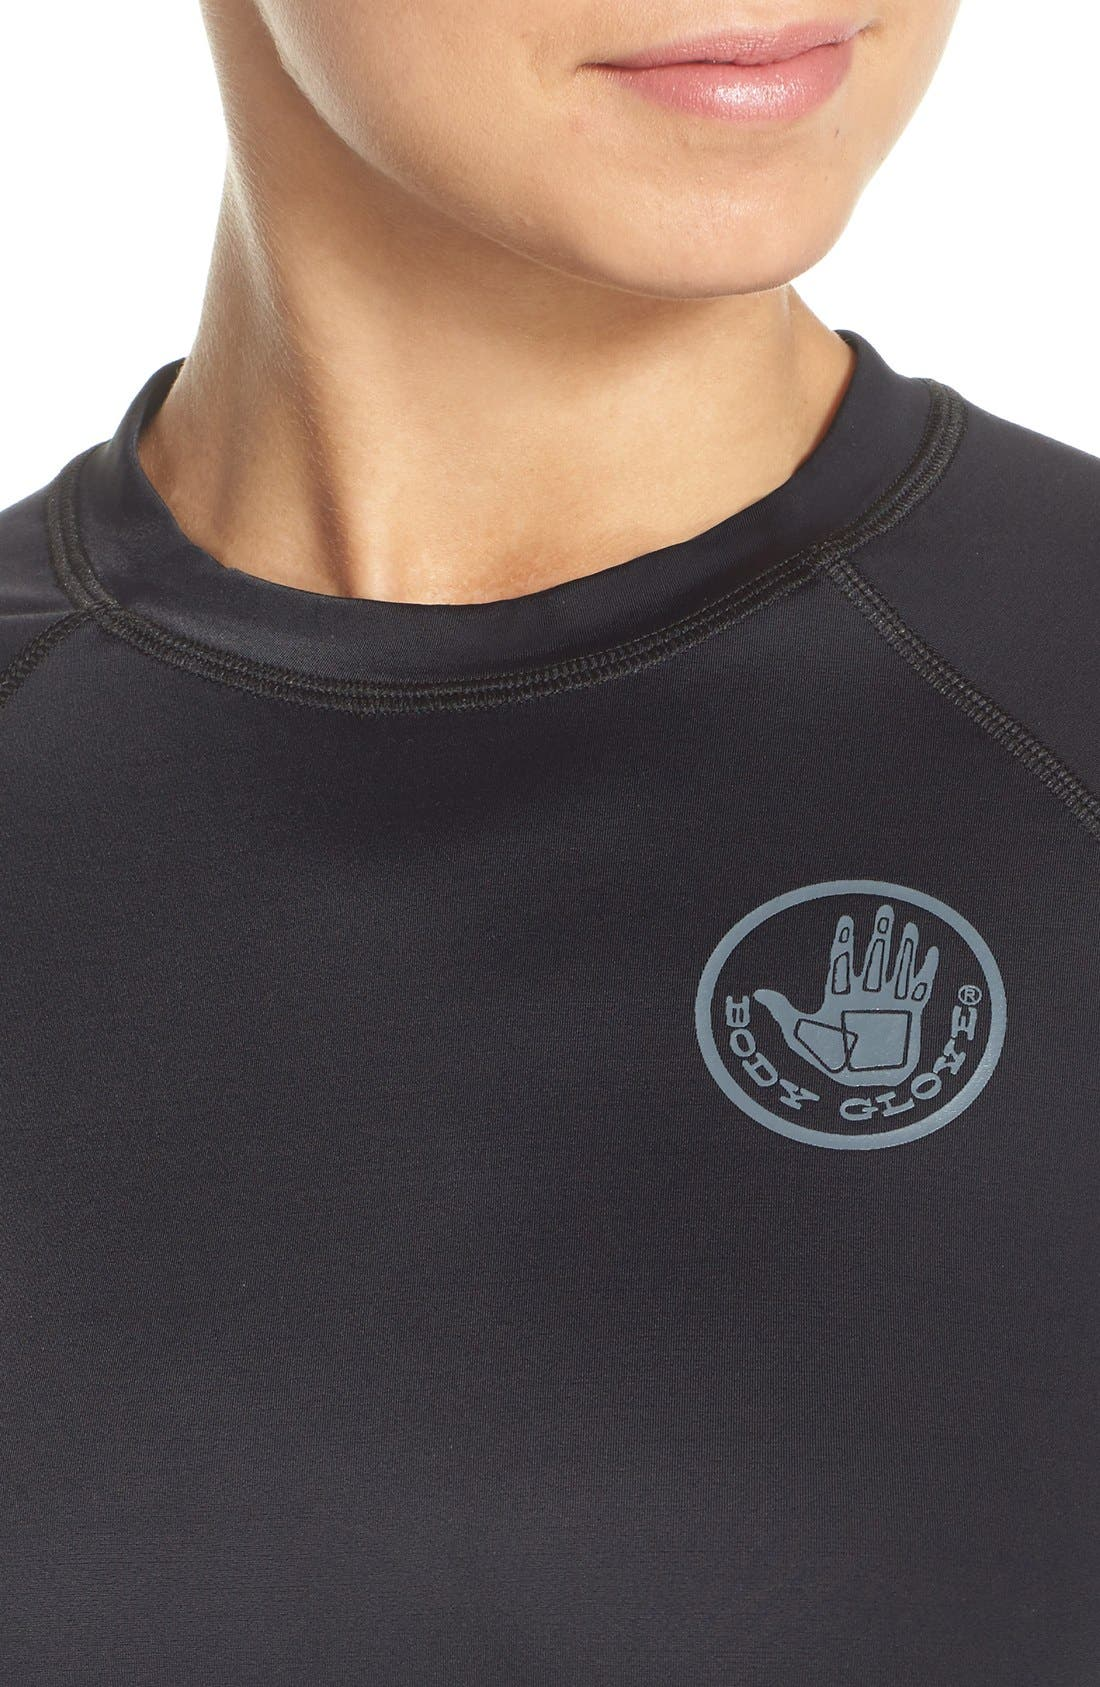 'Smoothies in Motion' Short Sleeve Rashguard,                             Alternate thumbnail 20, color,